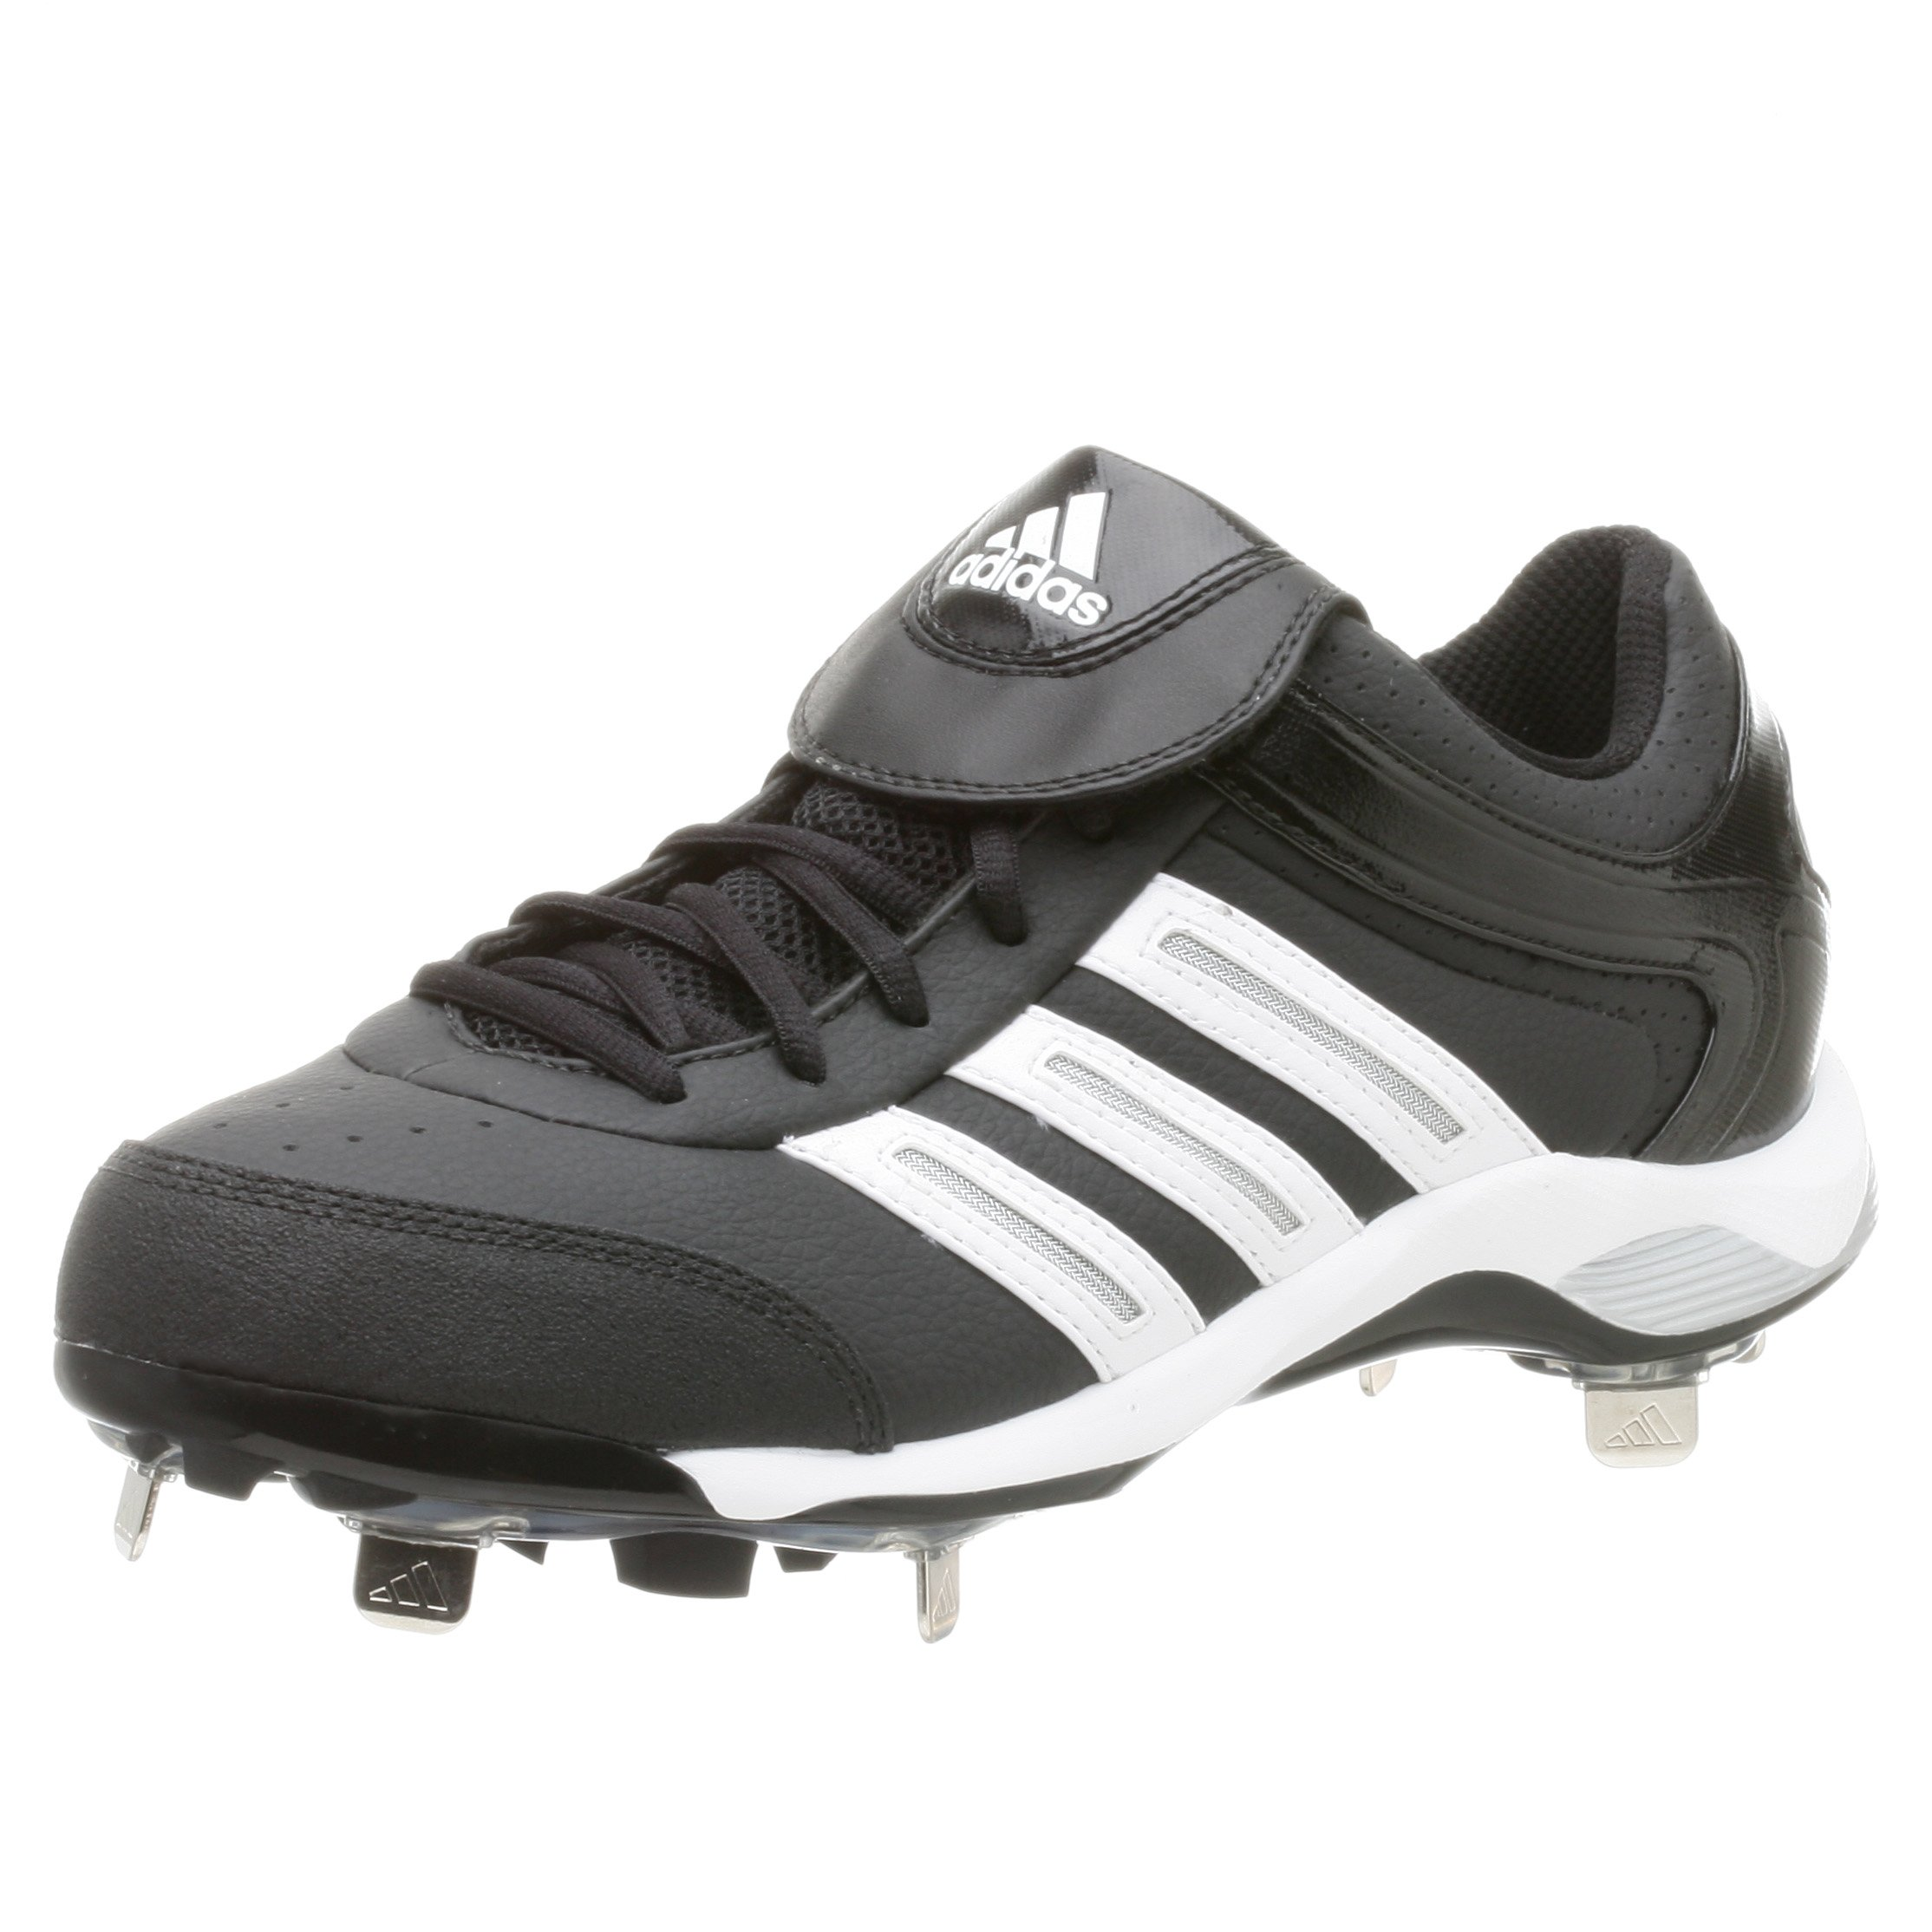 adidas Men's Diamond King Low Baseball Shoe,Blk/Runwht/Metsil,9.5 M